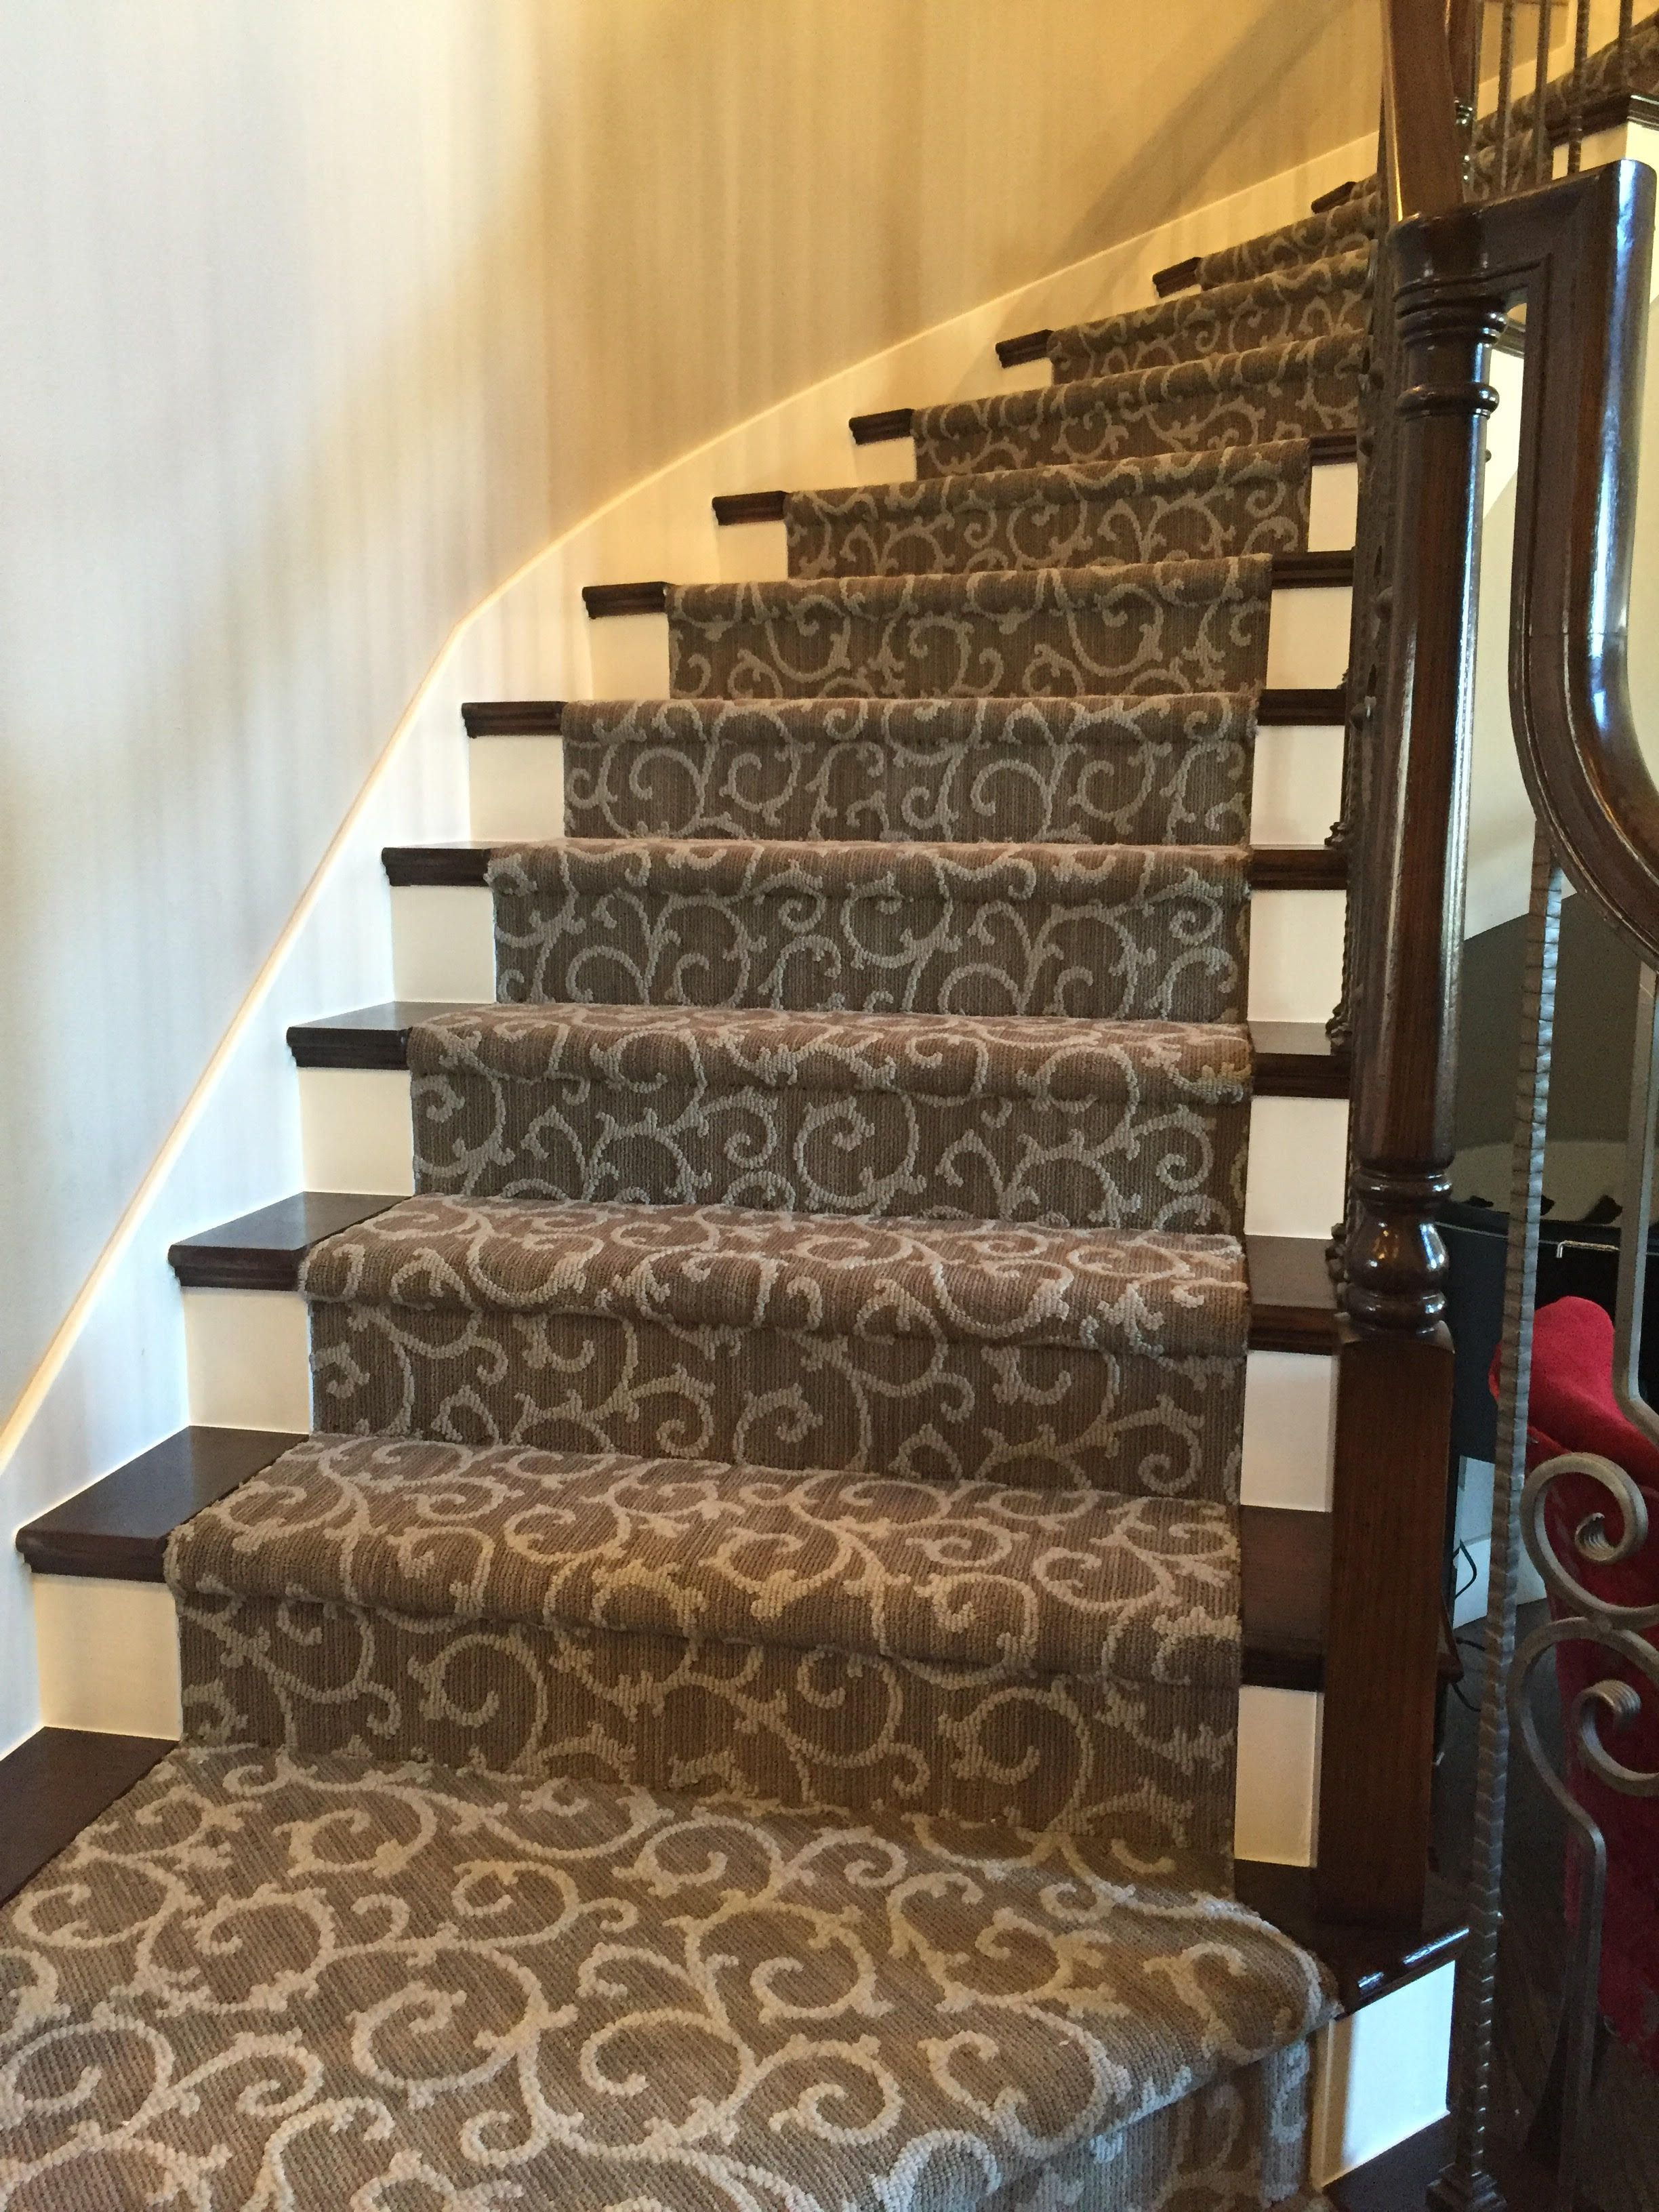 mallorca carpet from tuftex carpets of california on this staircase mill creek carpet saleinstallation - Carpets For Sale